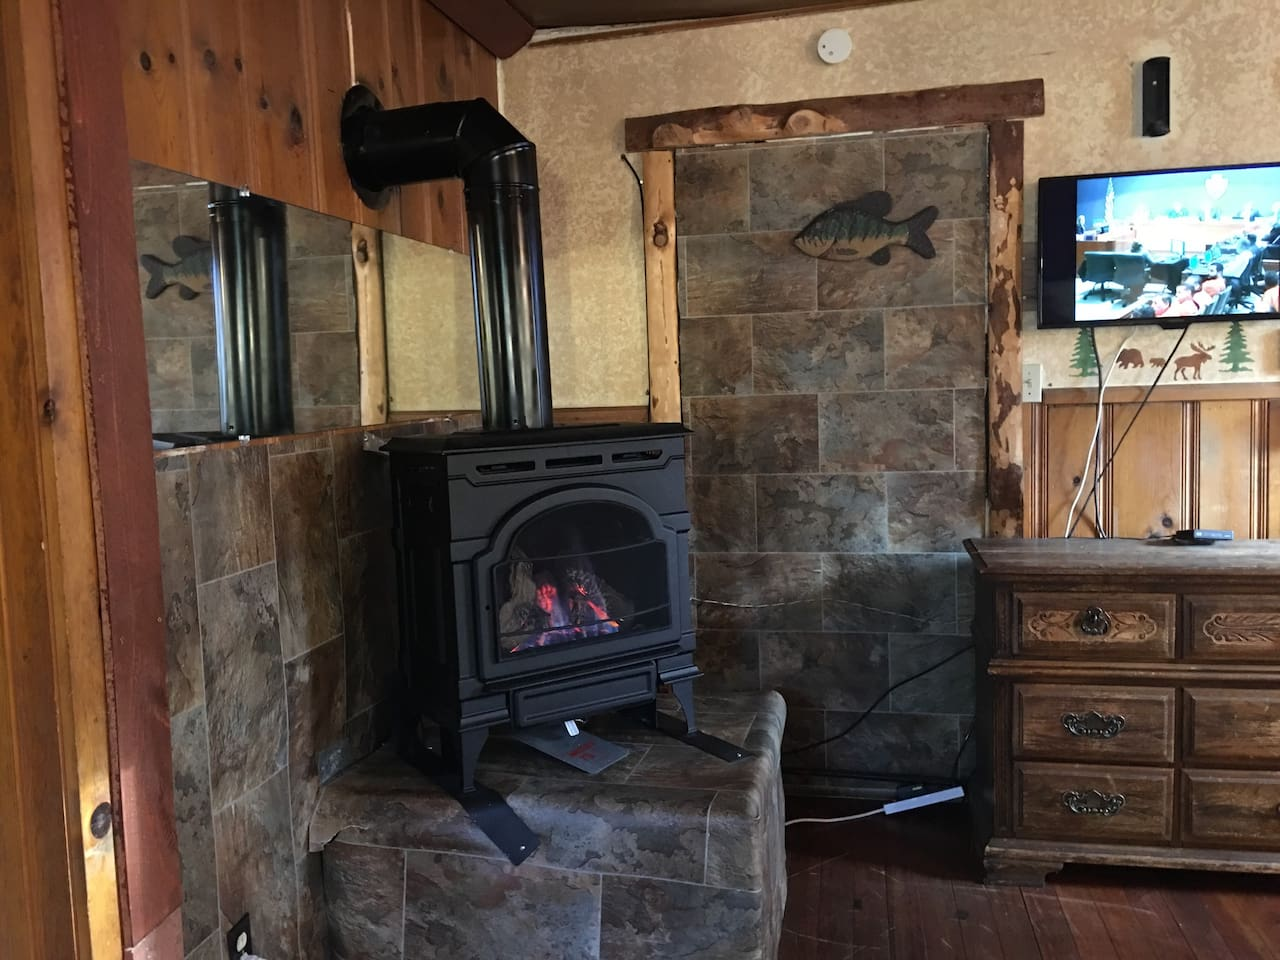 1920 rustic attached cabin, wood walls , Gas fireplace, No kitchen but with